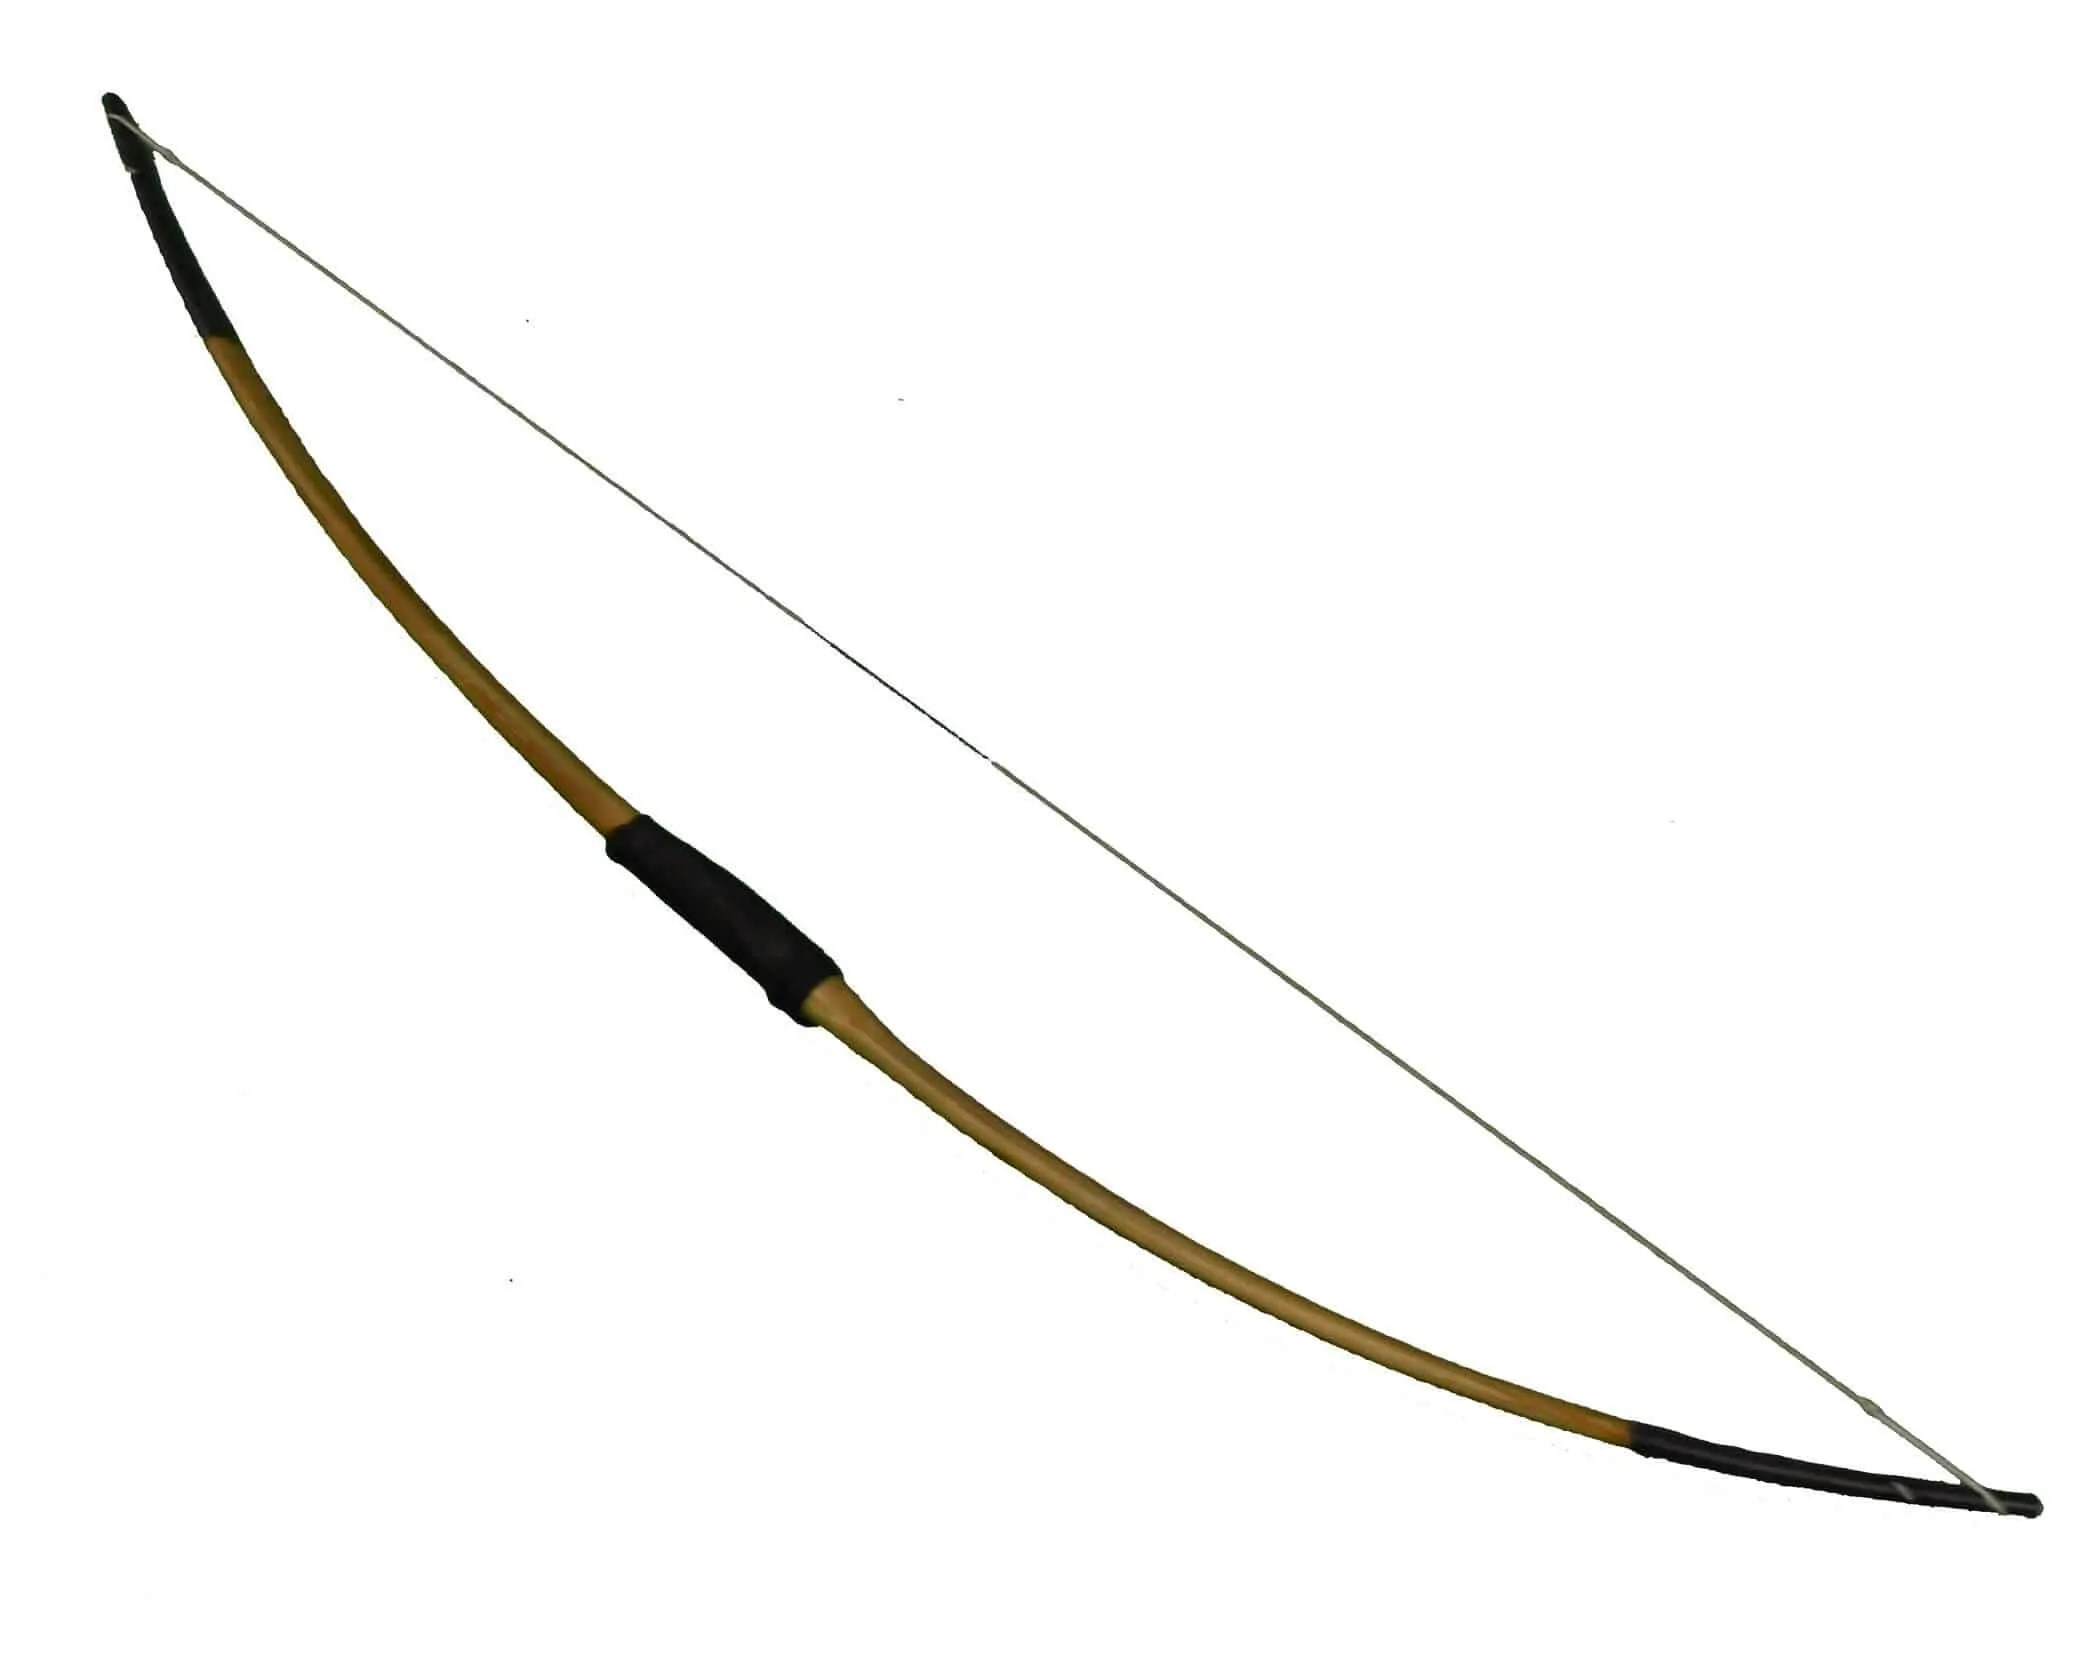 string tension and penetration of arrow